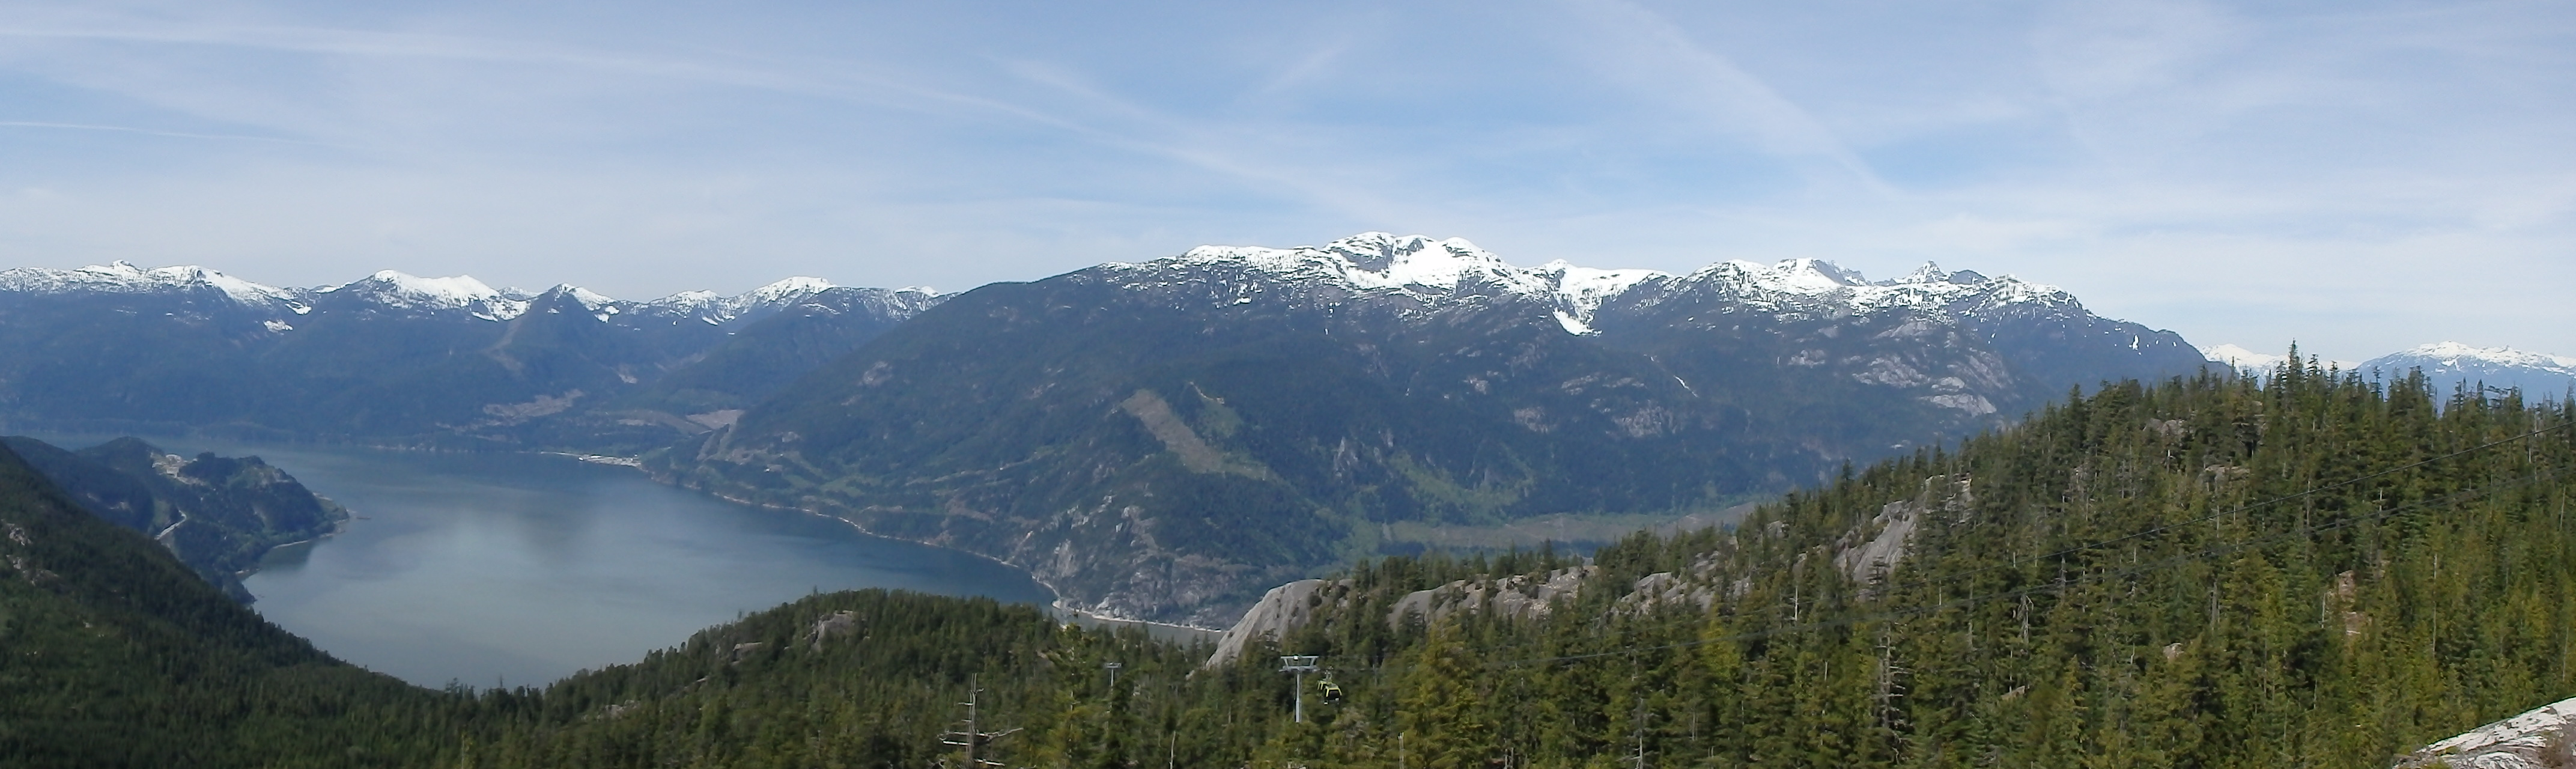 activities in Whistler BC Canada